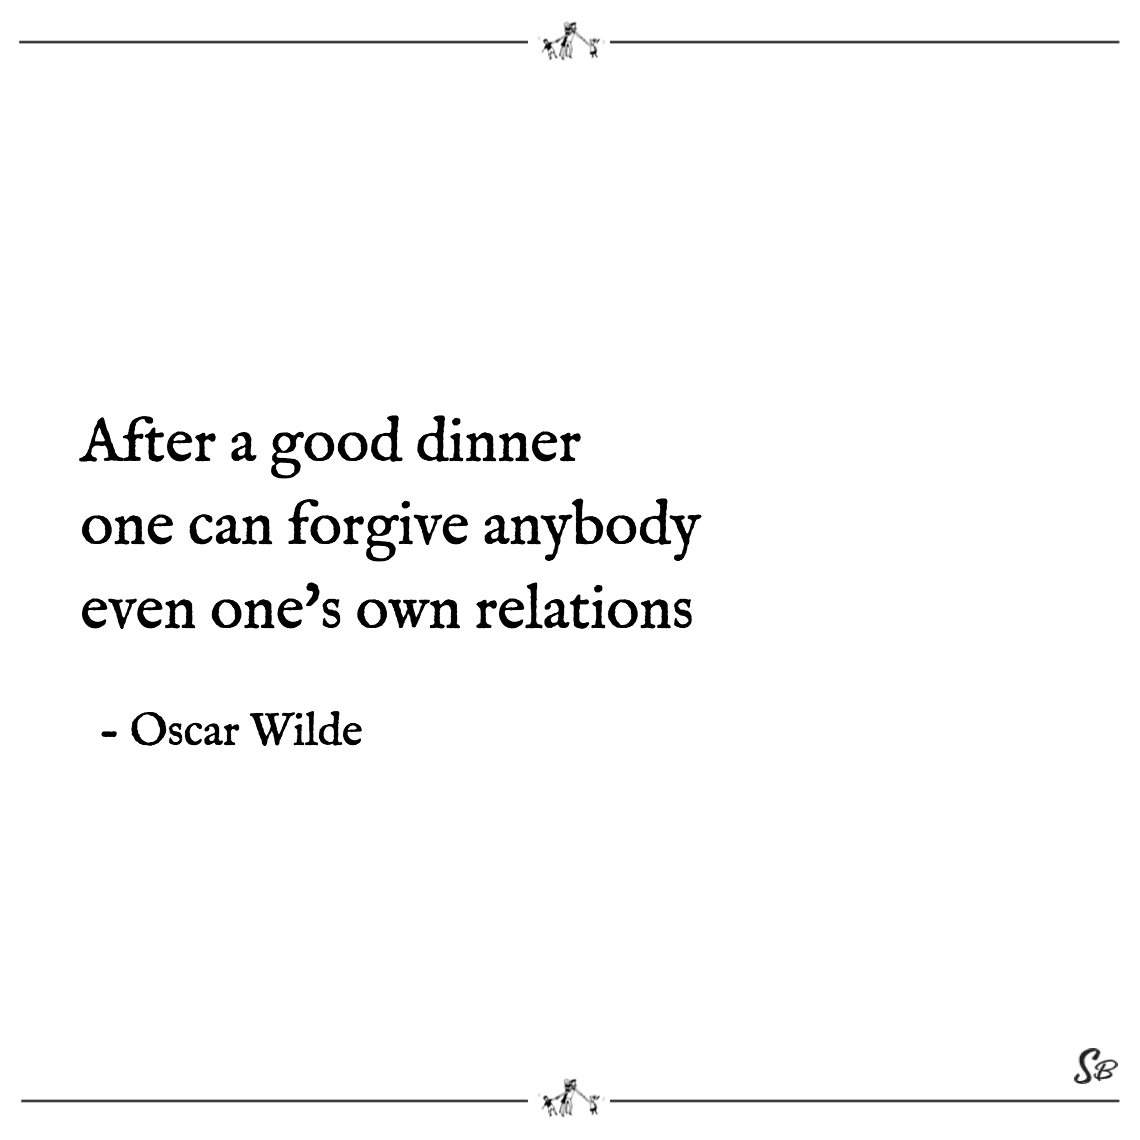 After a good dinner one can forgive anybody even one's own relations oscar wilde